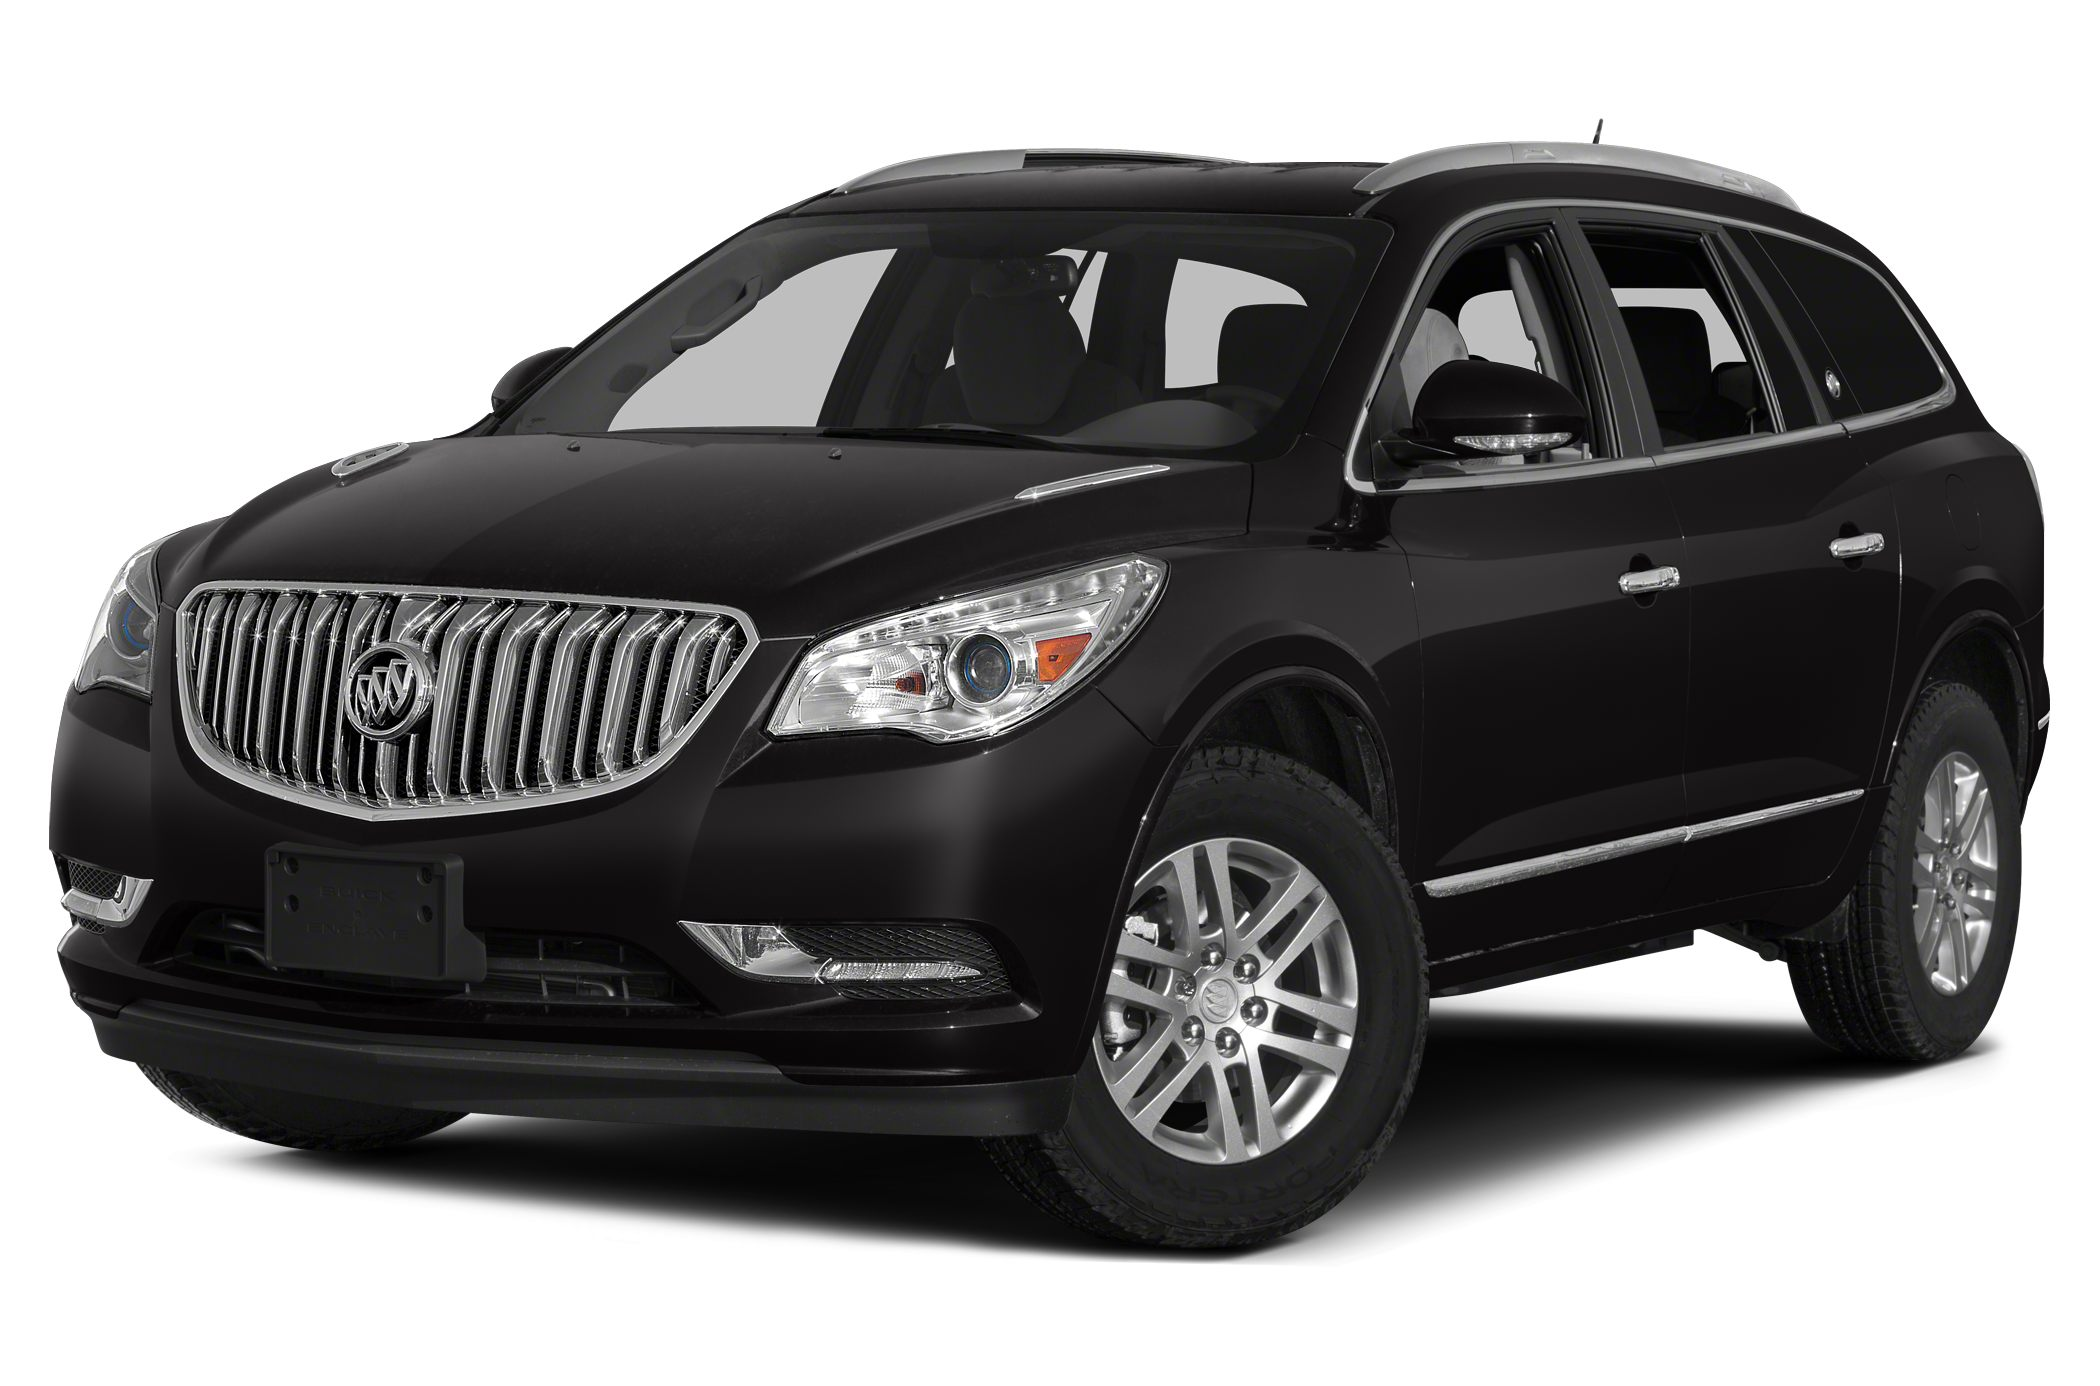 2015 Buick Enclave Premium SUV for sale in Keene for $52,362 with 3 miles.